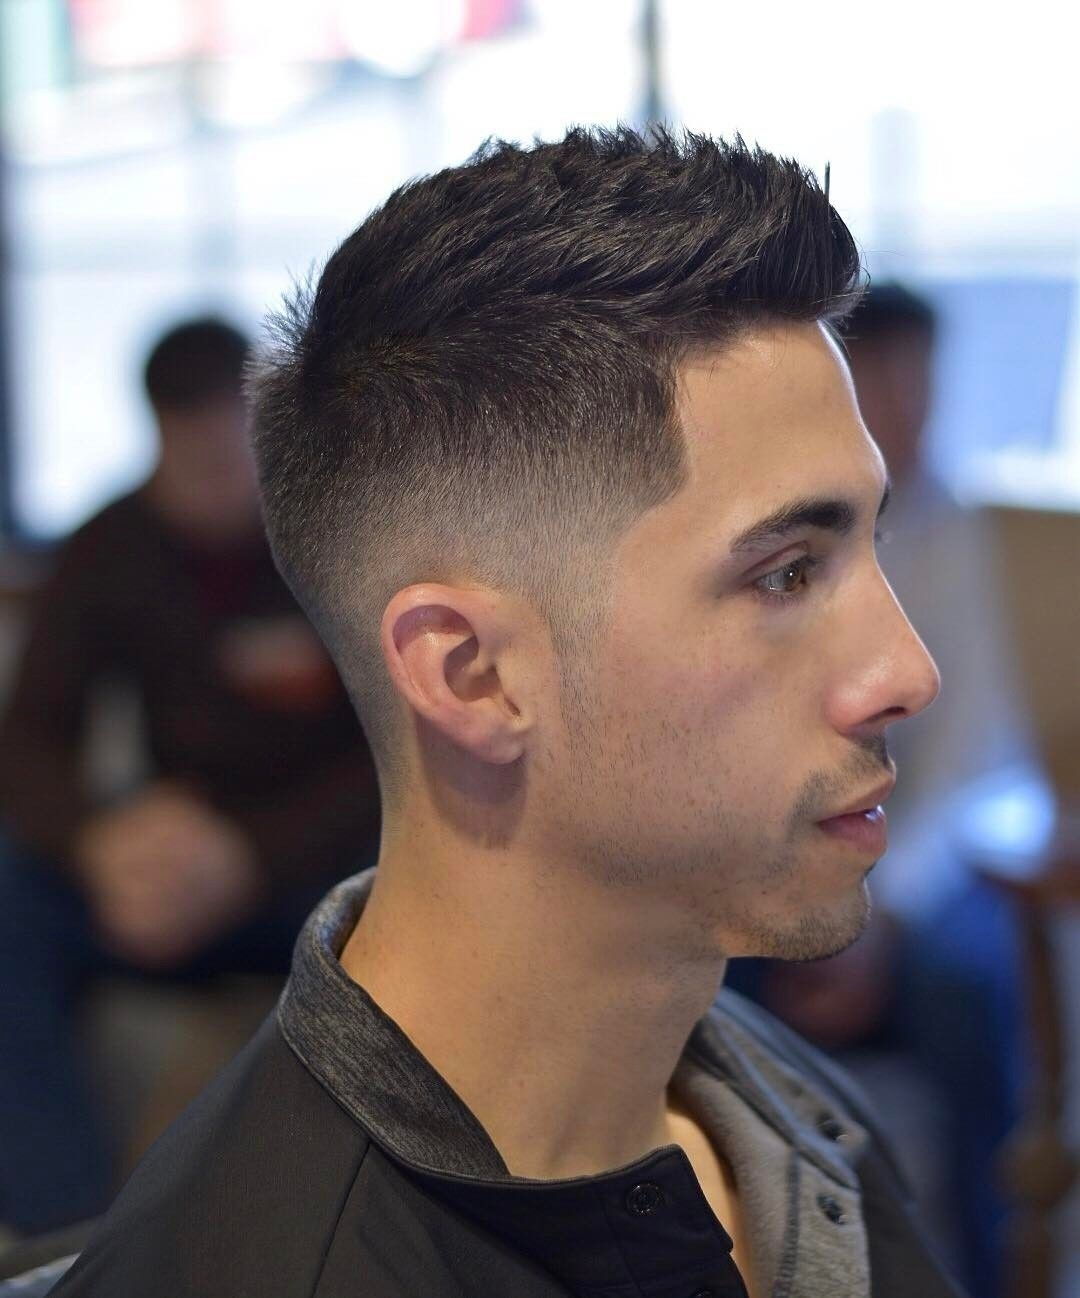 Cool 50 Classy Military Haircut Styles - Choose Yours with Indian Army Hair Style Pic Hd